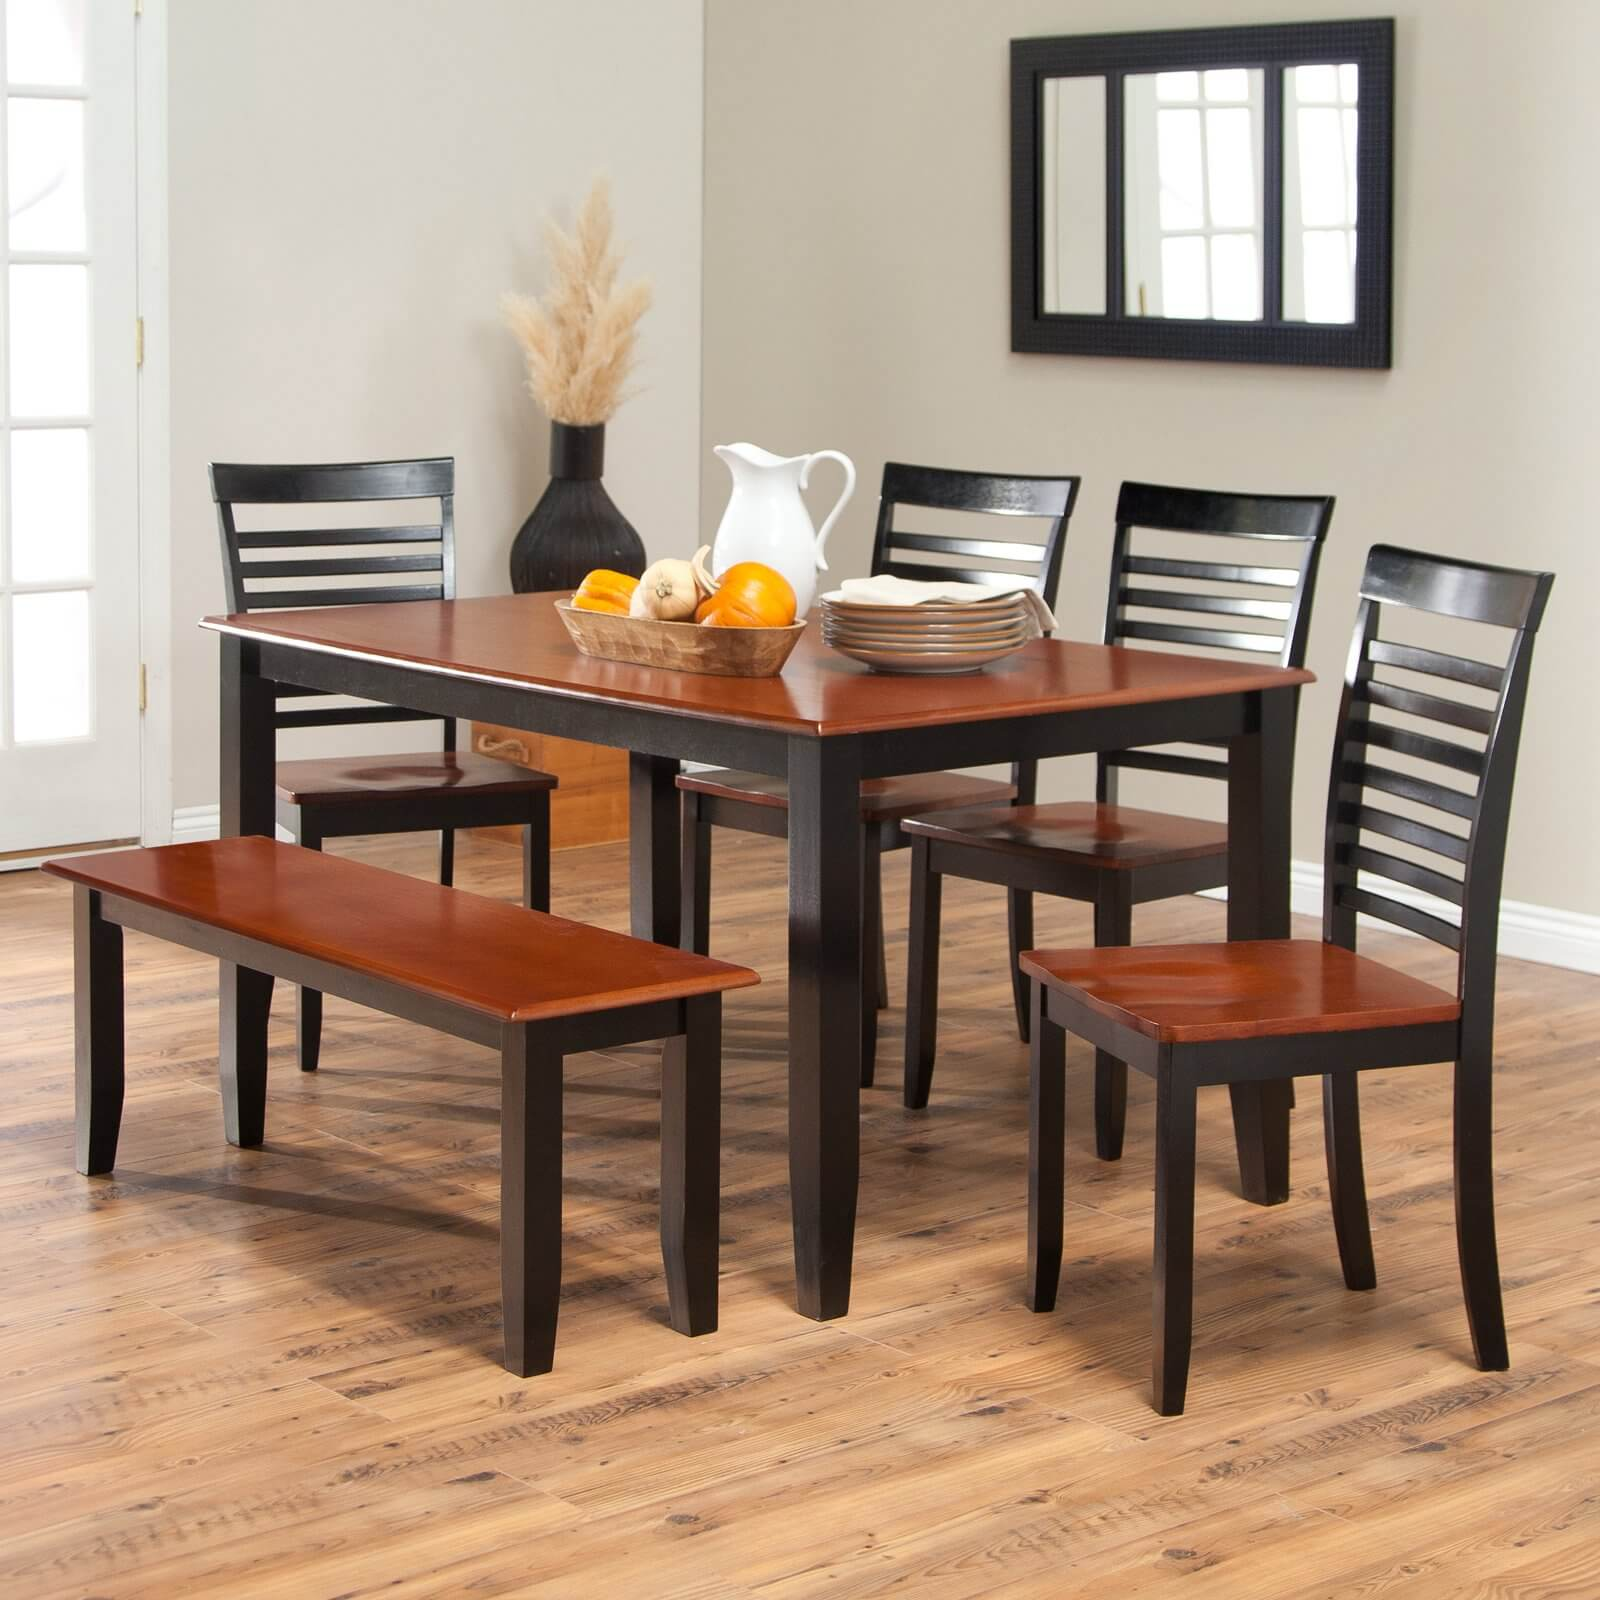 26 big small dining room sets with bench seating for Small dining table and bench set